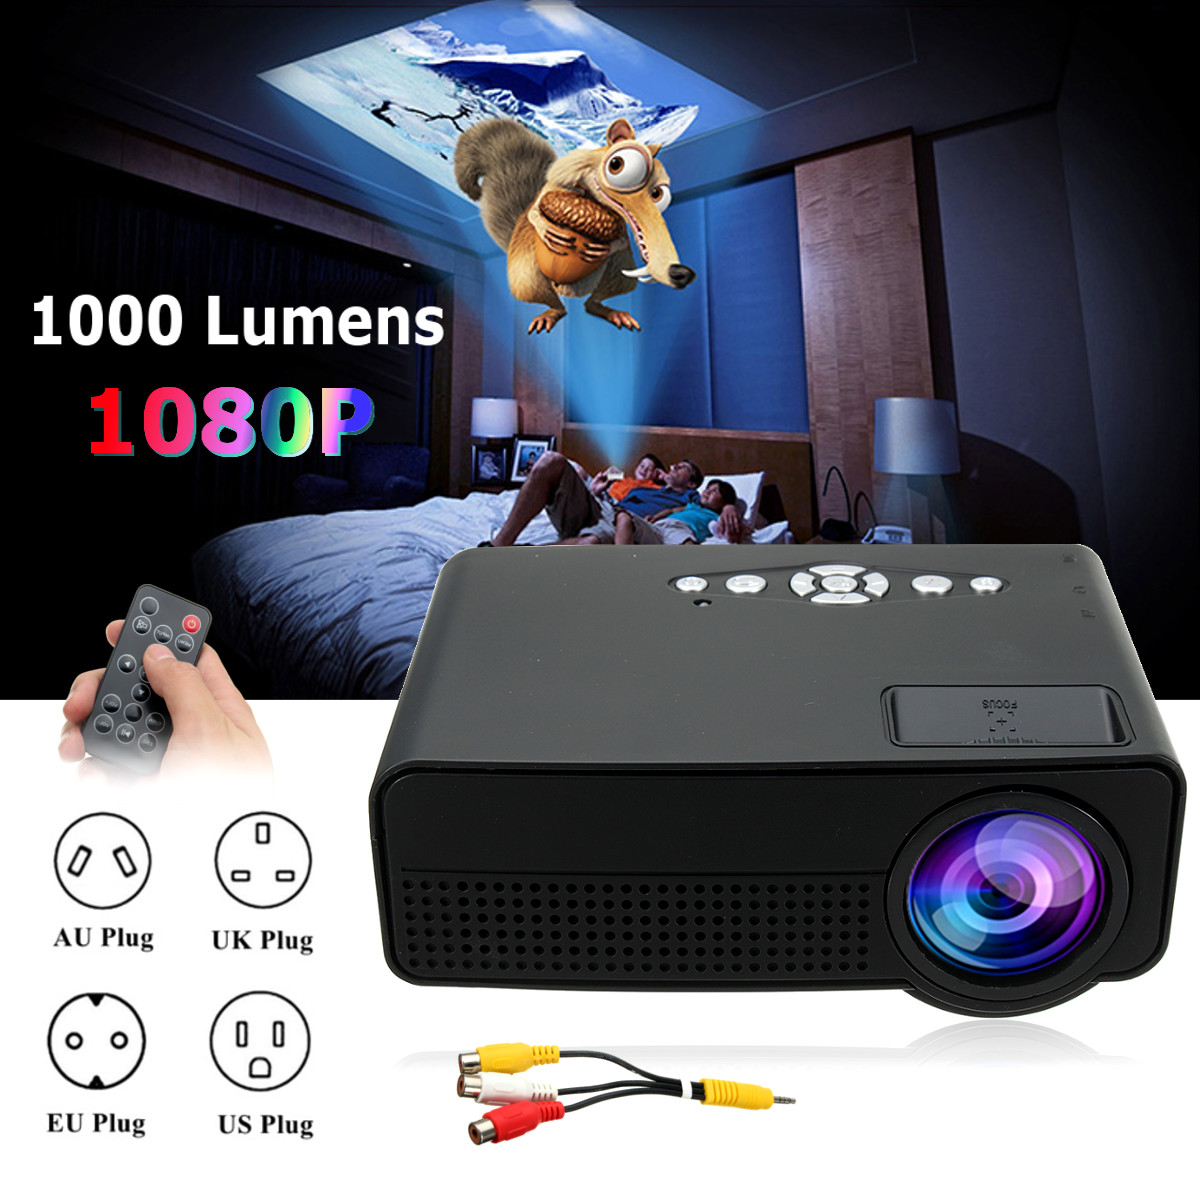 LEORY Portable 7000 Lumens HD 1080P 3D Multimedia Projector LED Home Theater HDMI USB Home Theatre System